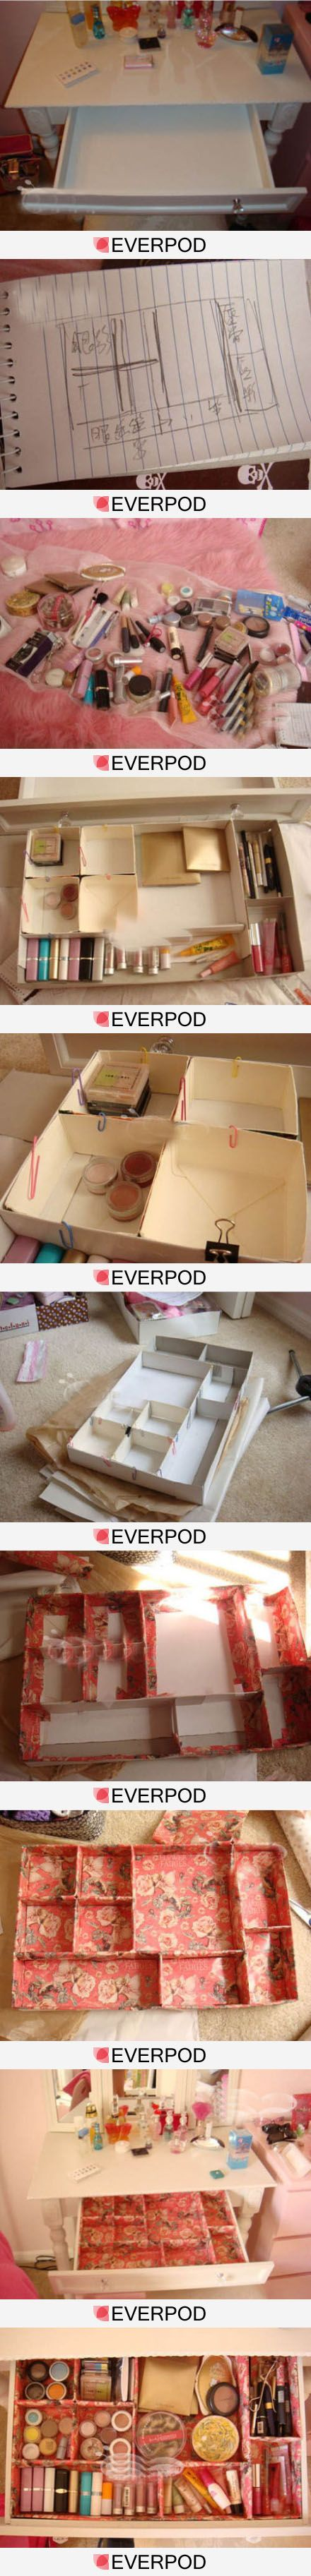 makeup organizer. Wow